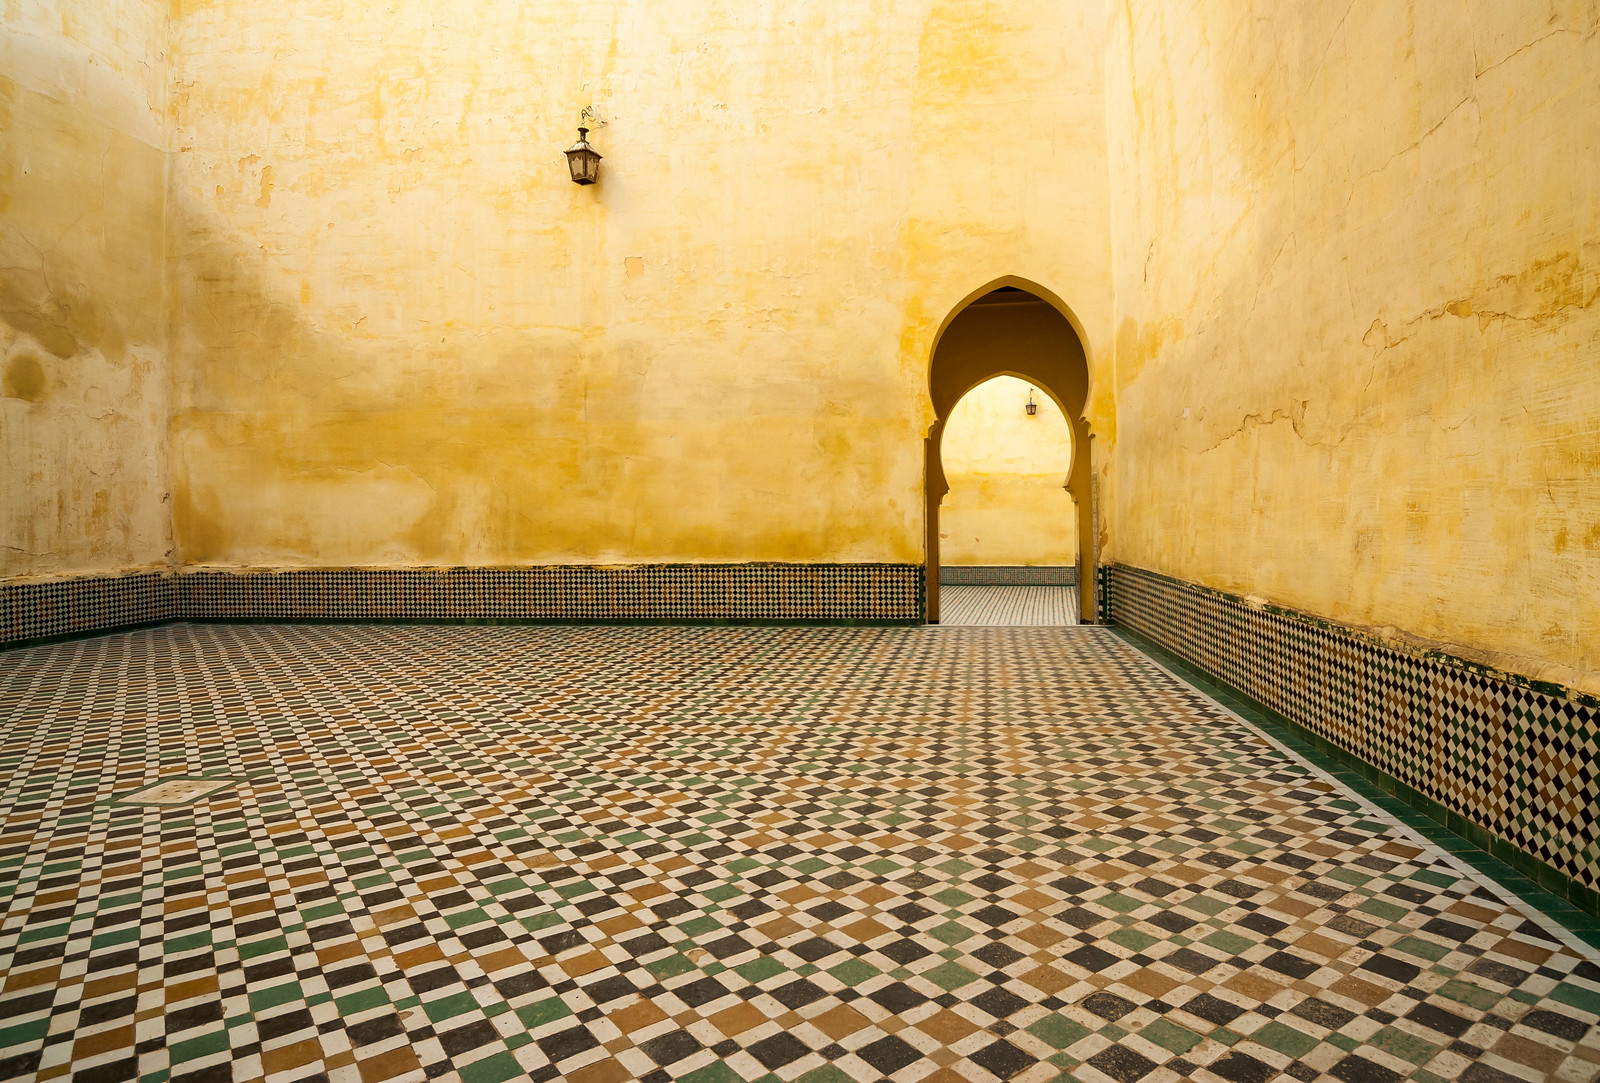 Mausoleum of Moulay Ismail, Meknes